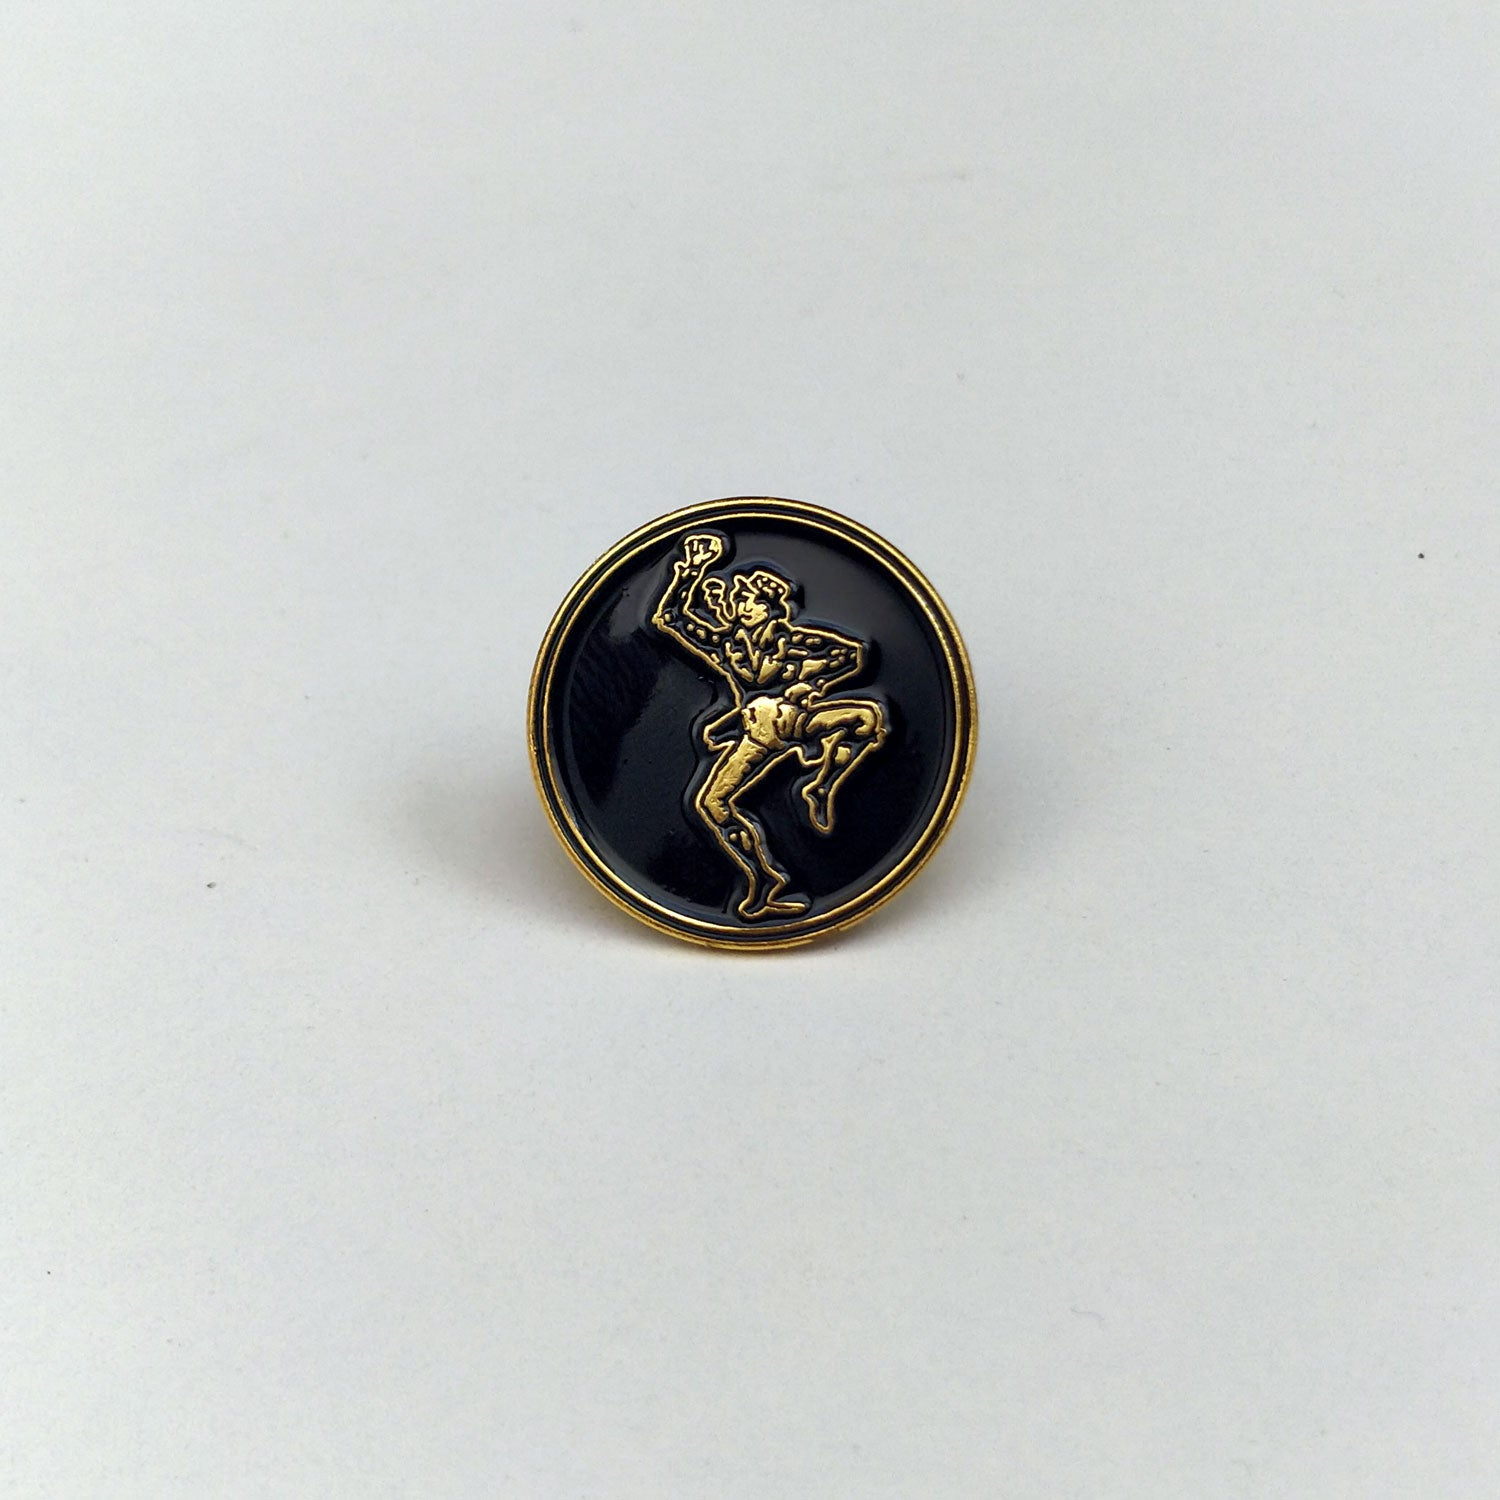 Image of Pre-order: 20th Anniversary Gold Pin